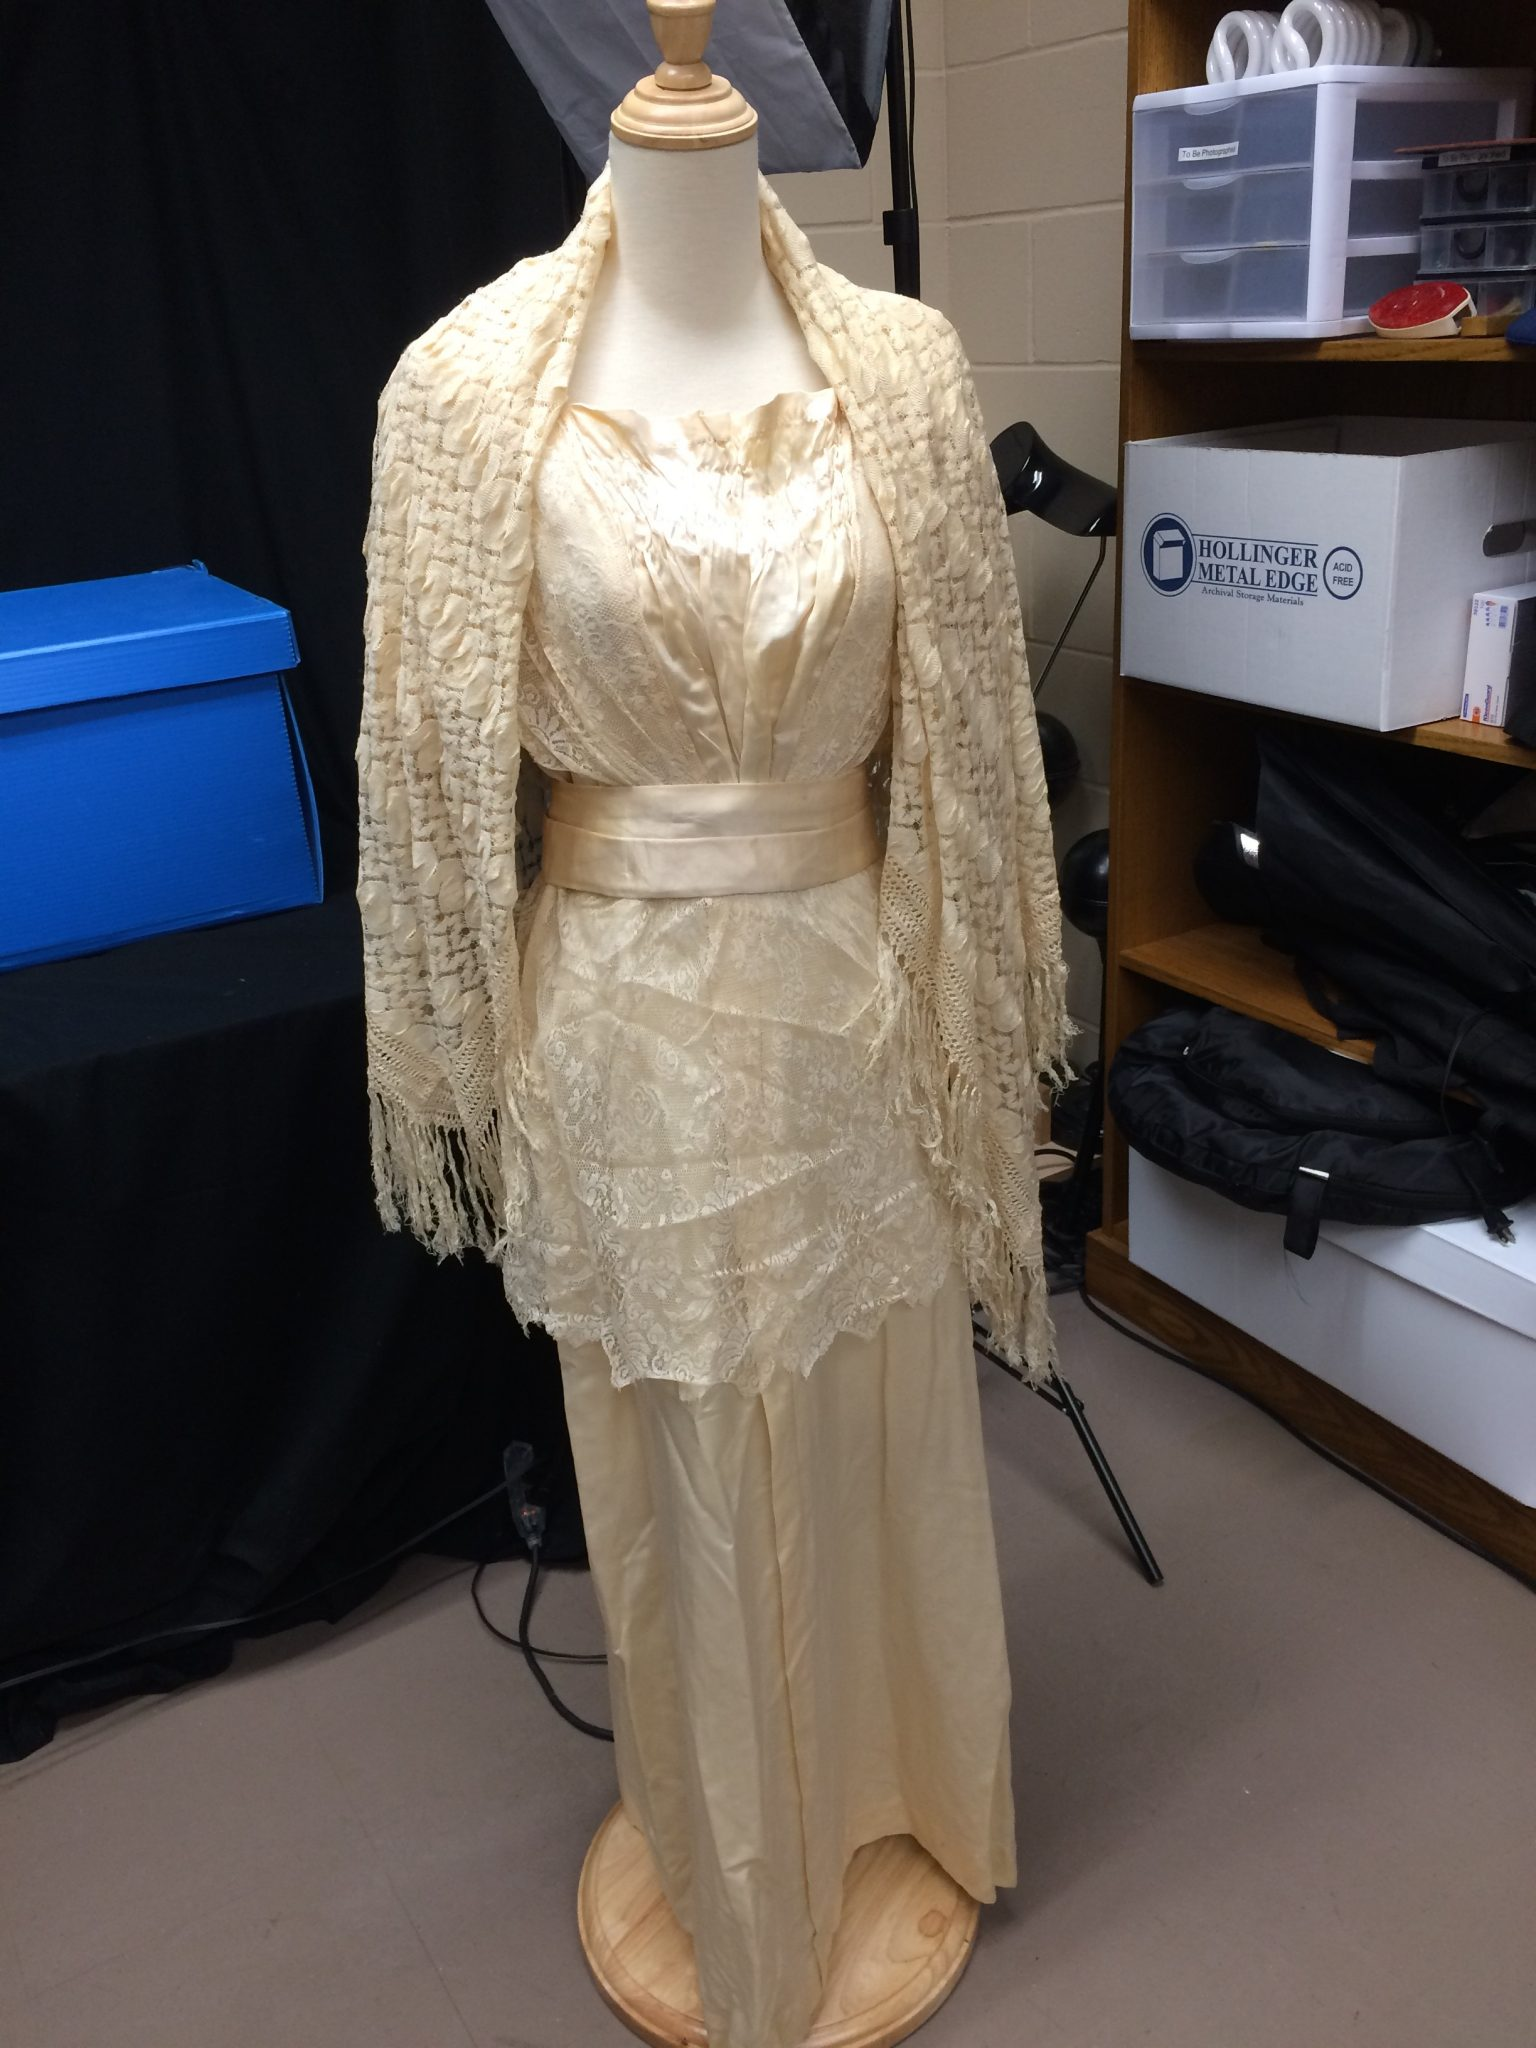 The Dress of Many Patterns – a citizen science project